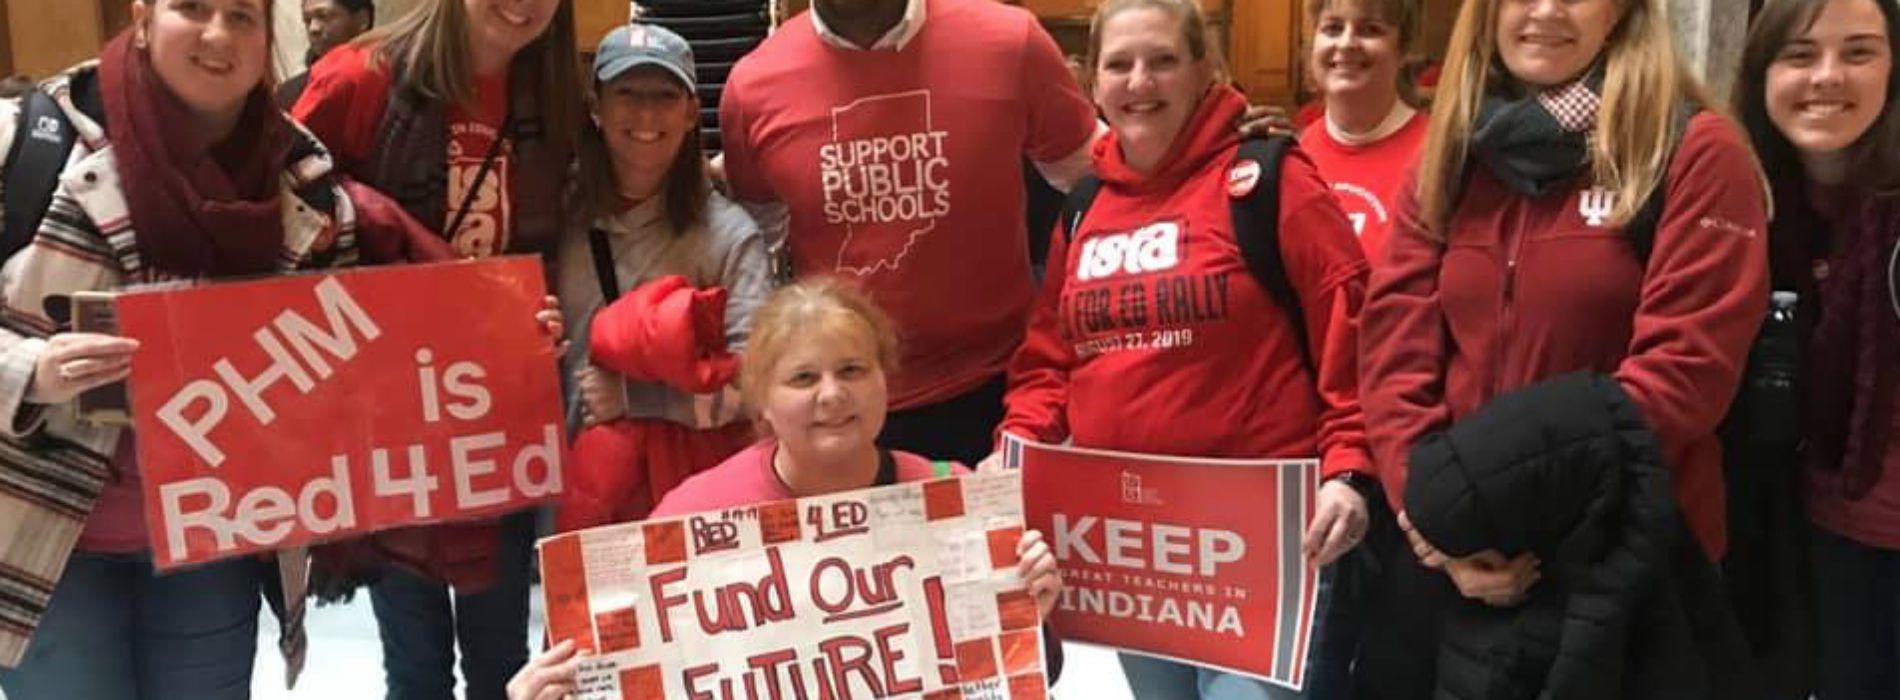 MELTON STANDS WITH EDUCATORS IN FIGHT FOR WHAT CHILDREN DESERVE